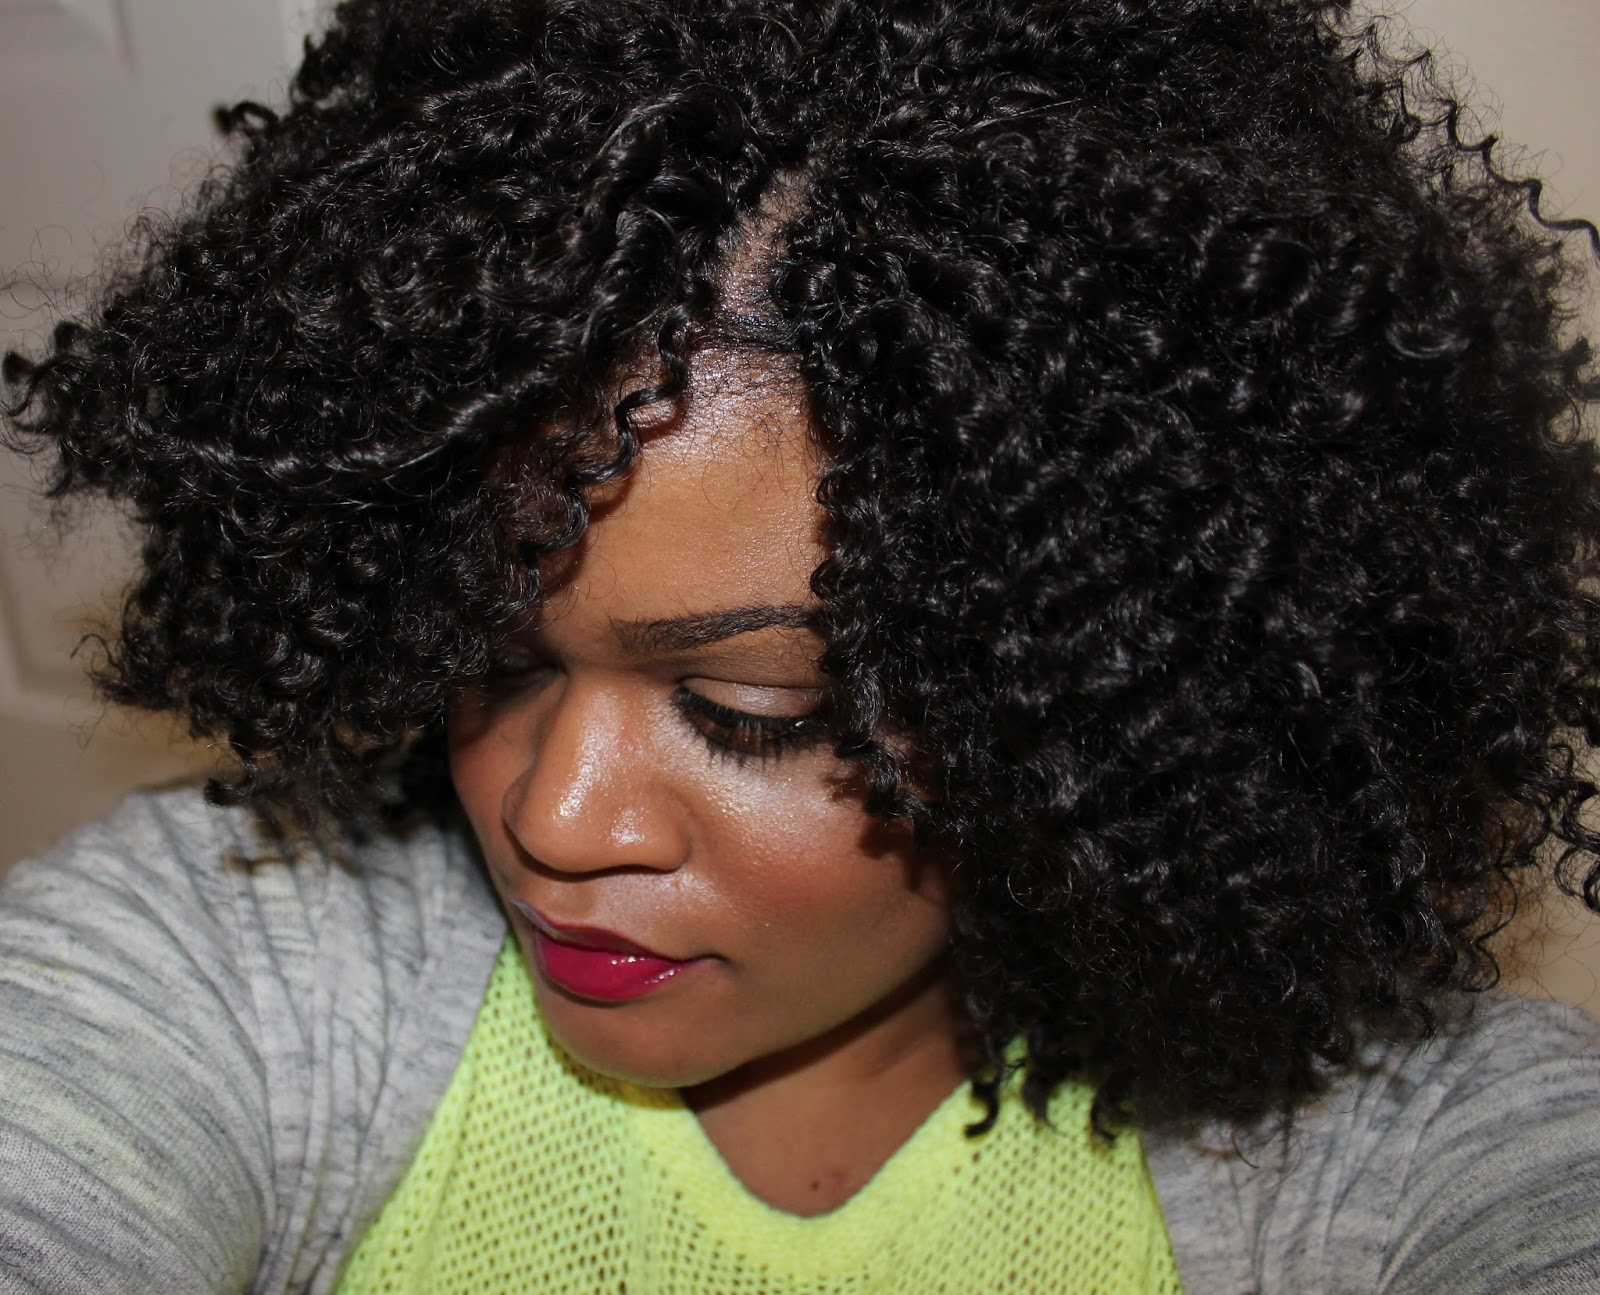 Crocheting Your Hair : FabEllis: Natural Hair What Are Crochet Braids?